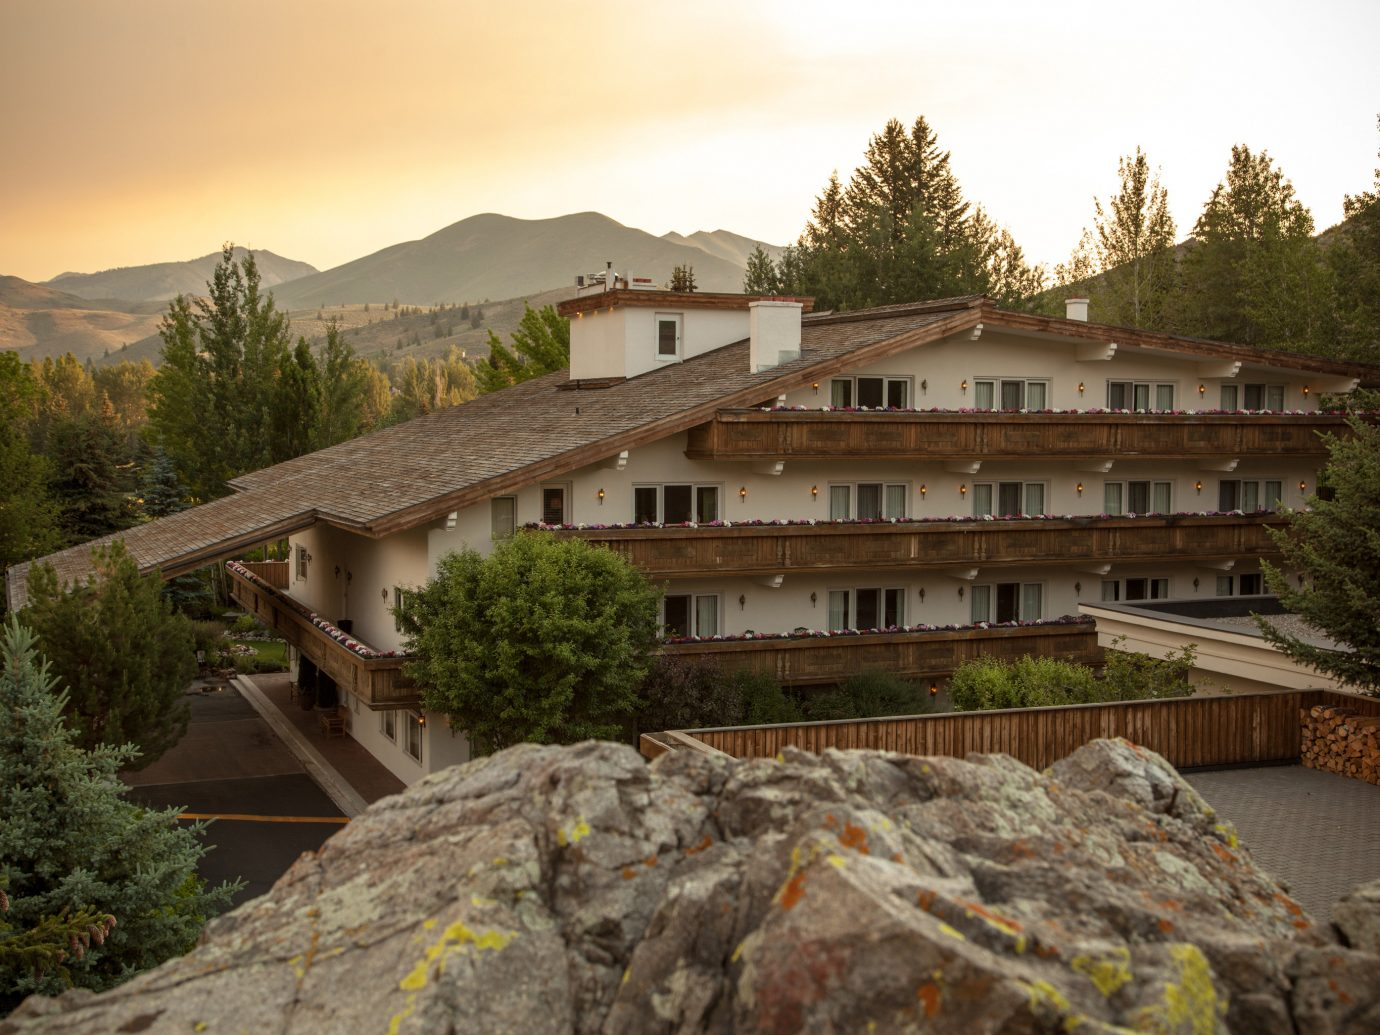 Fall Travel Mountains + Skiing National Parks Outdoors + Adventure Trip Ideas tree sky outdoor rock house mountainous landforms mountain property home Architecture real estate roof estate plant building Village landscape mountain range stone hill facade Villa elevation mountain village hillside